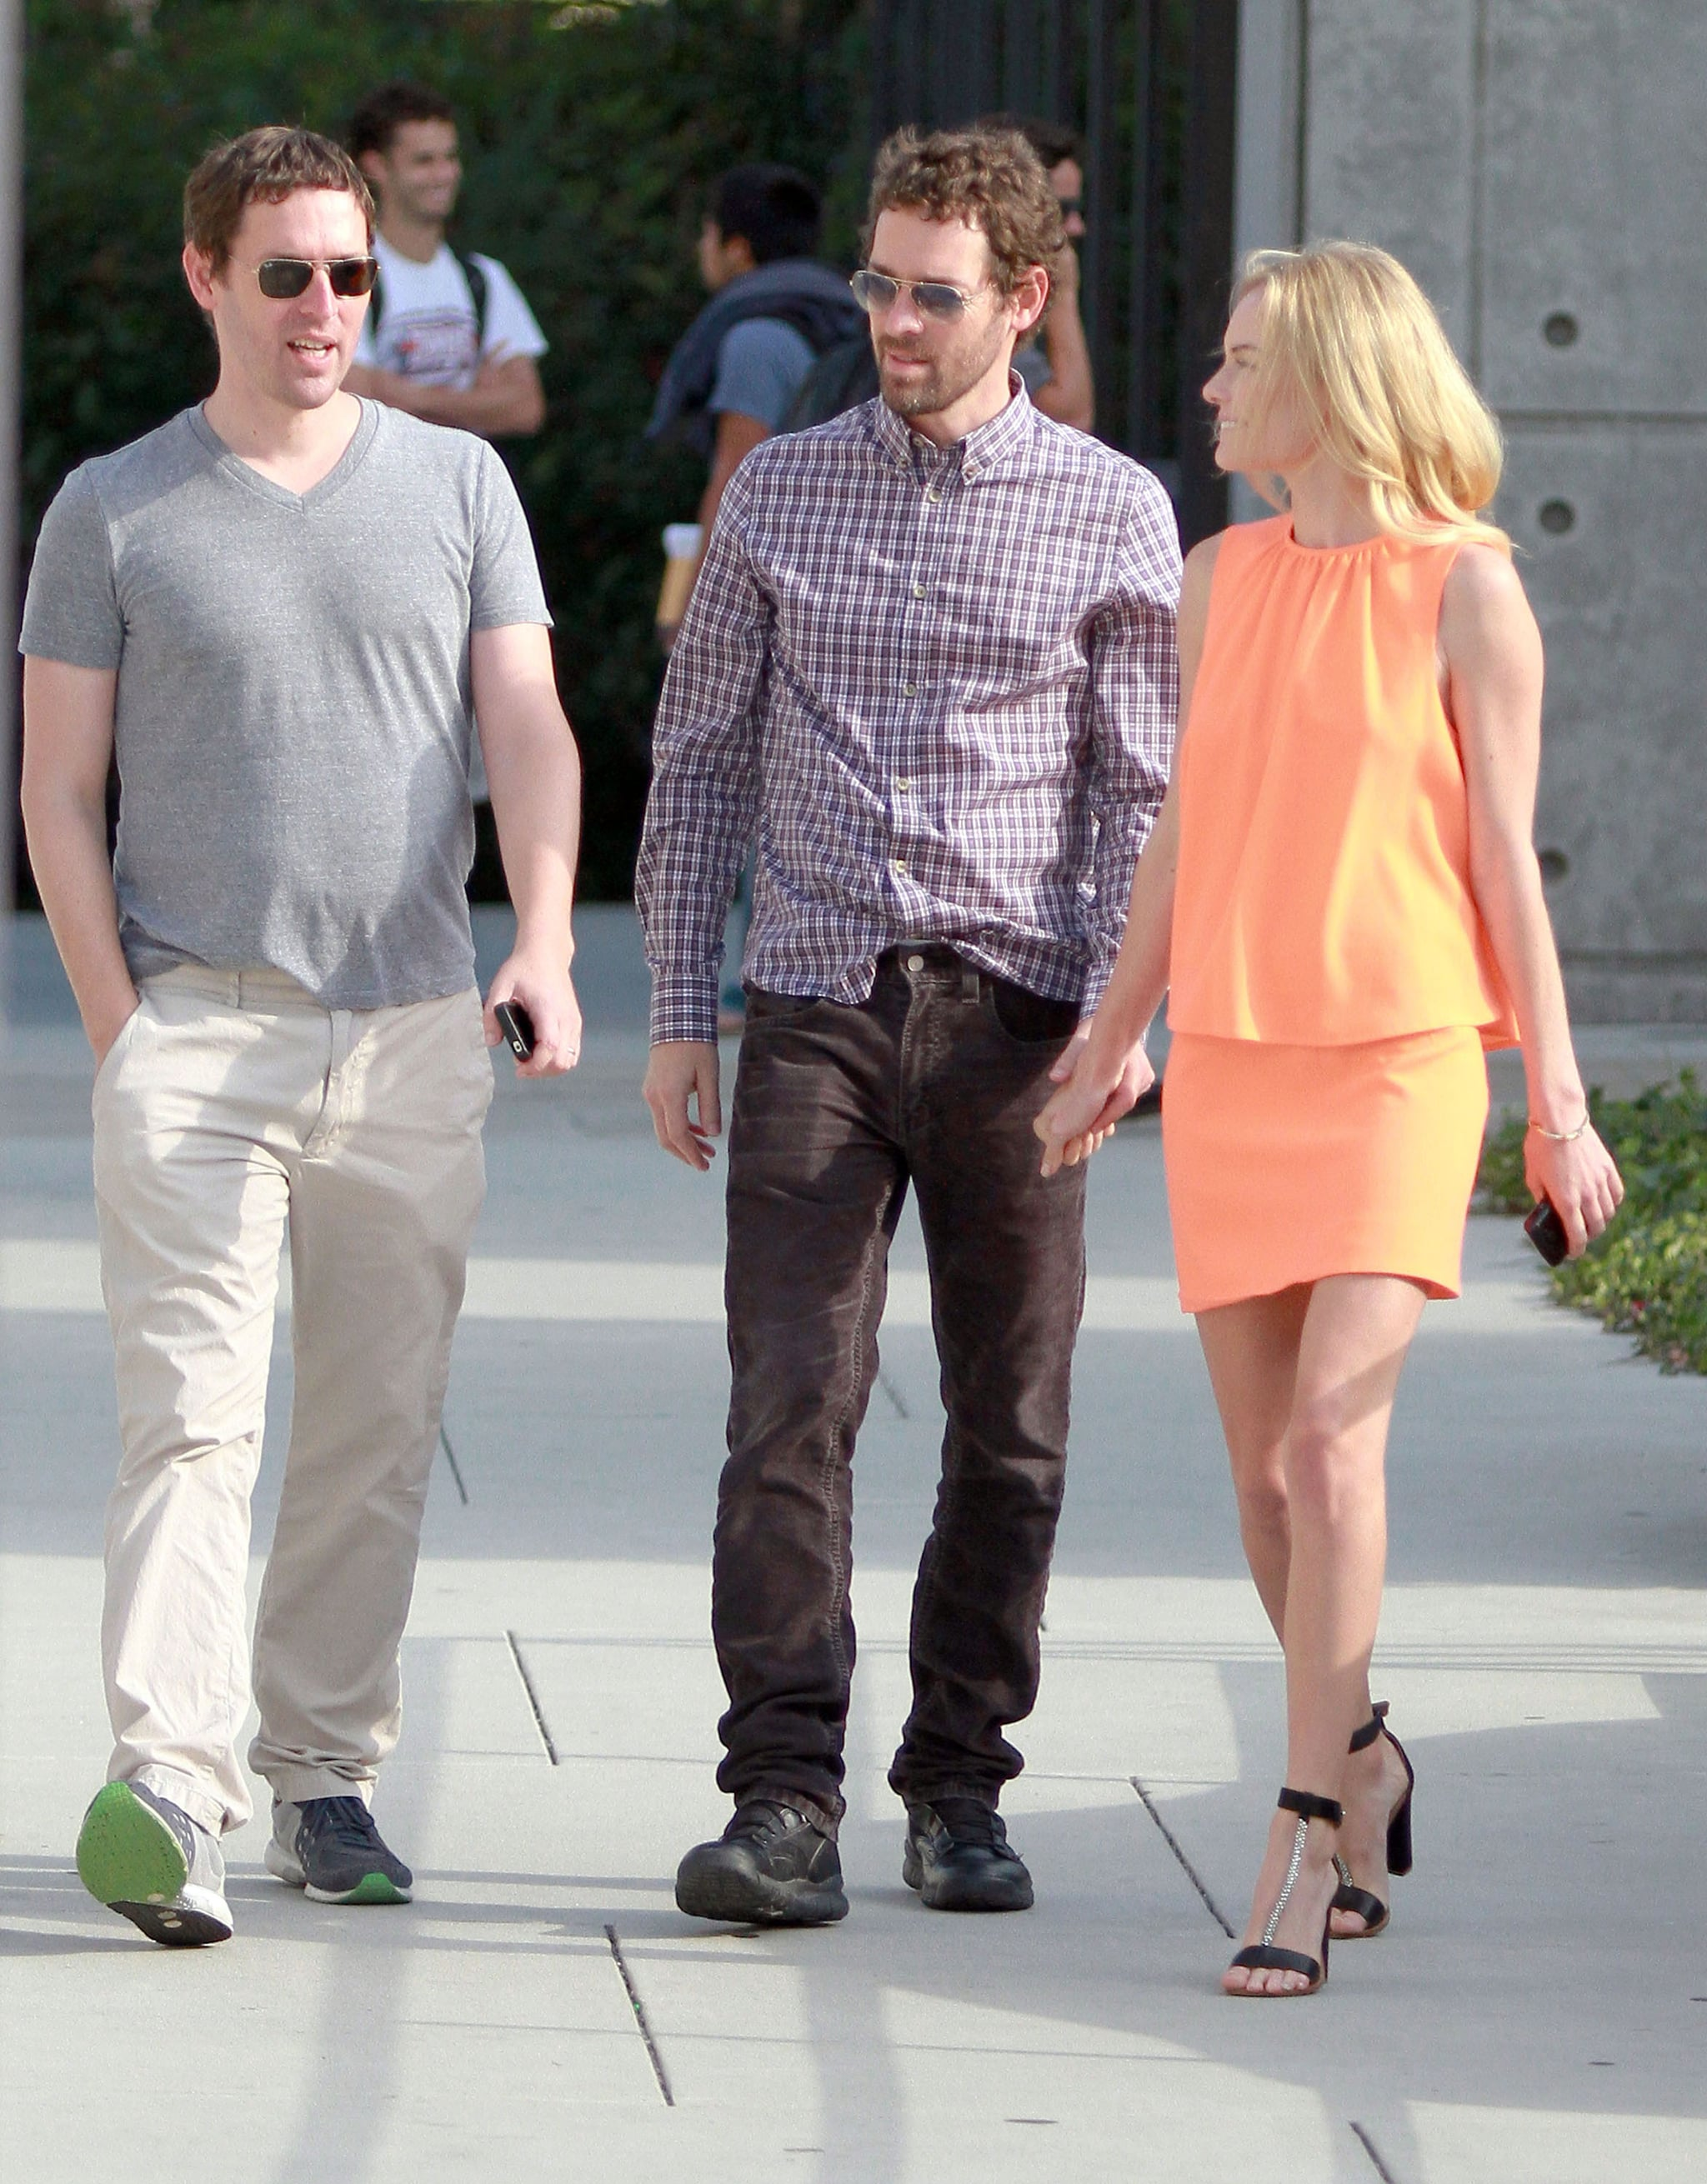 Kate Bosworth and Michael Polish chat with a friend.